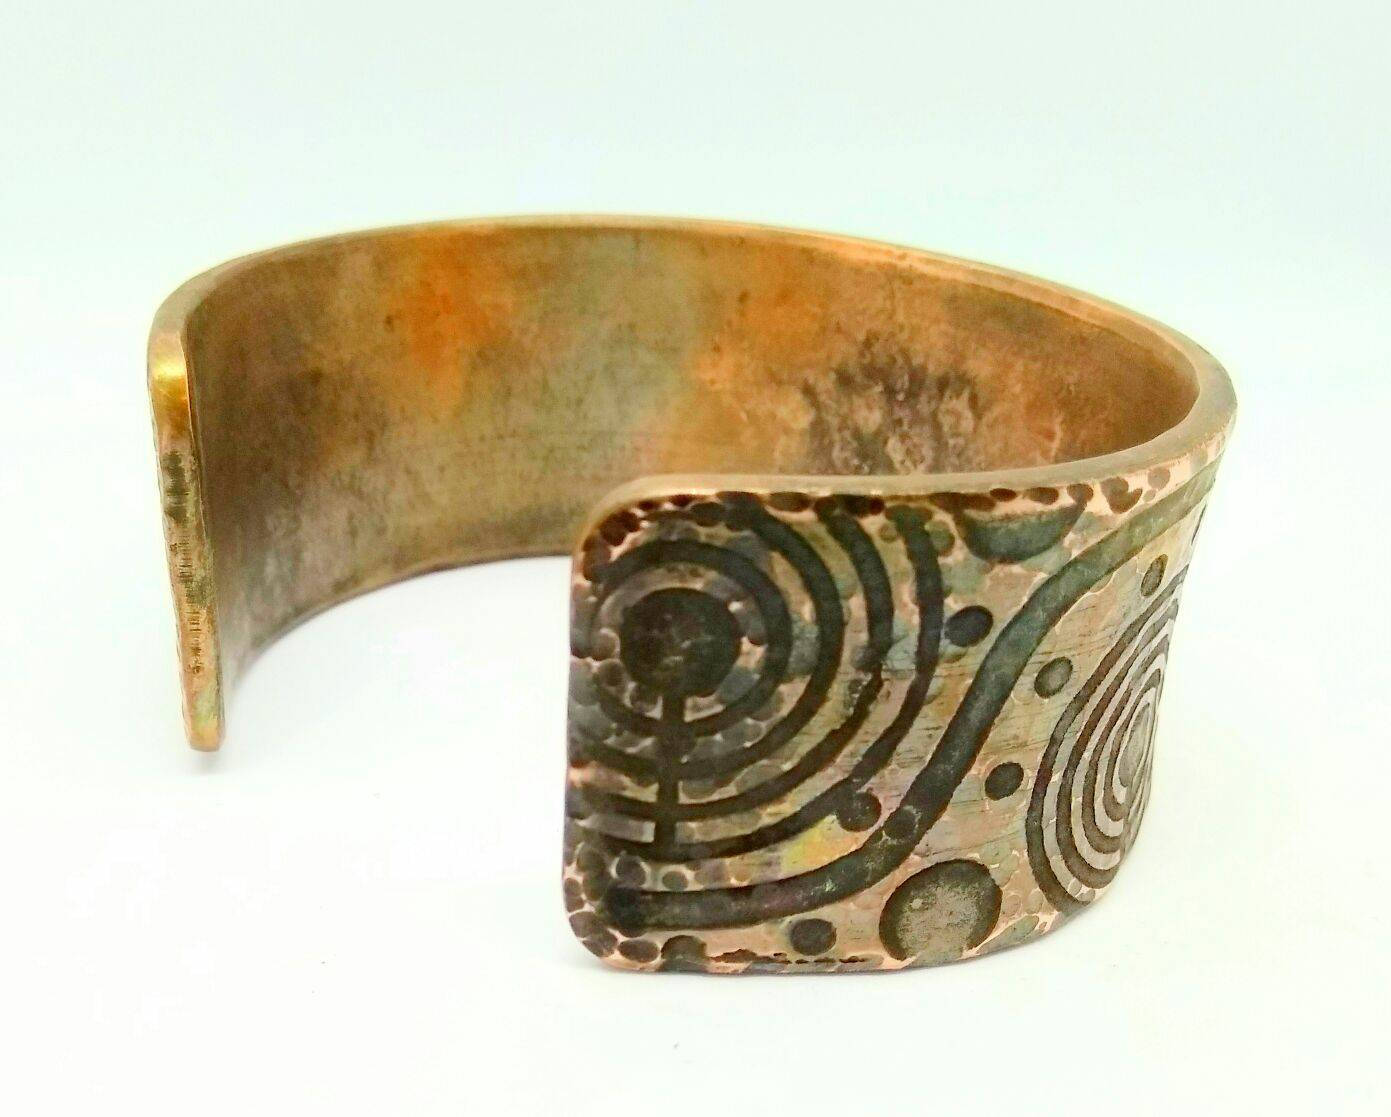 Rock Art Cuff Bracelet (Cup and Ring, Petroglyph,Copper,Brass)